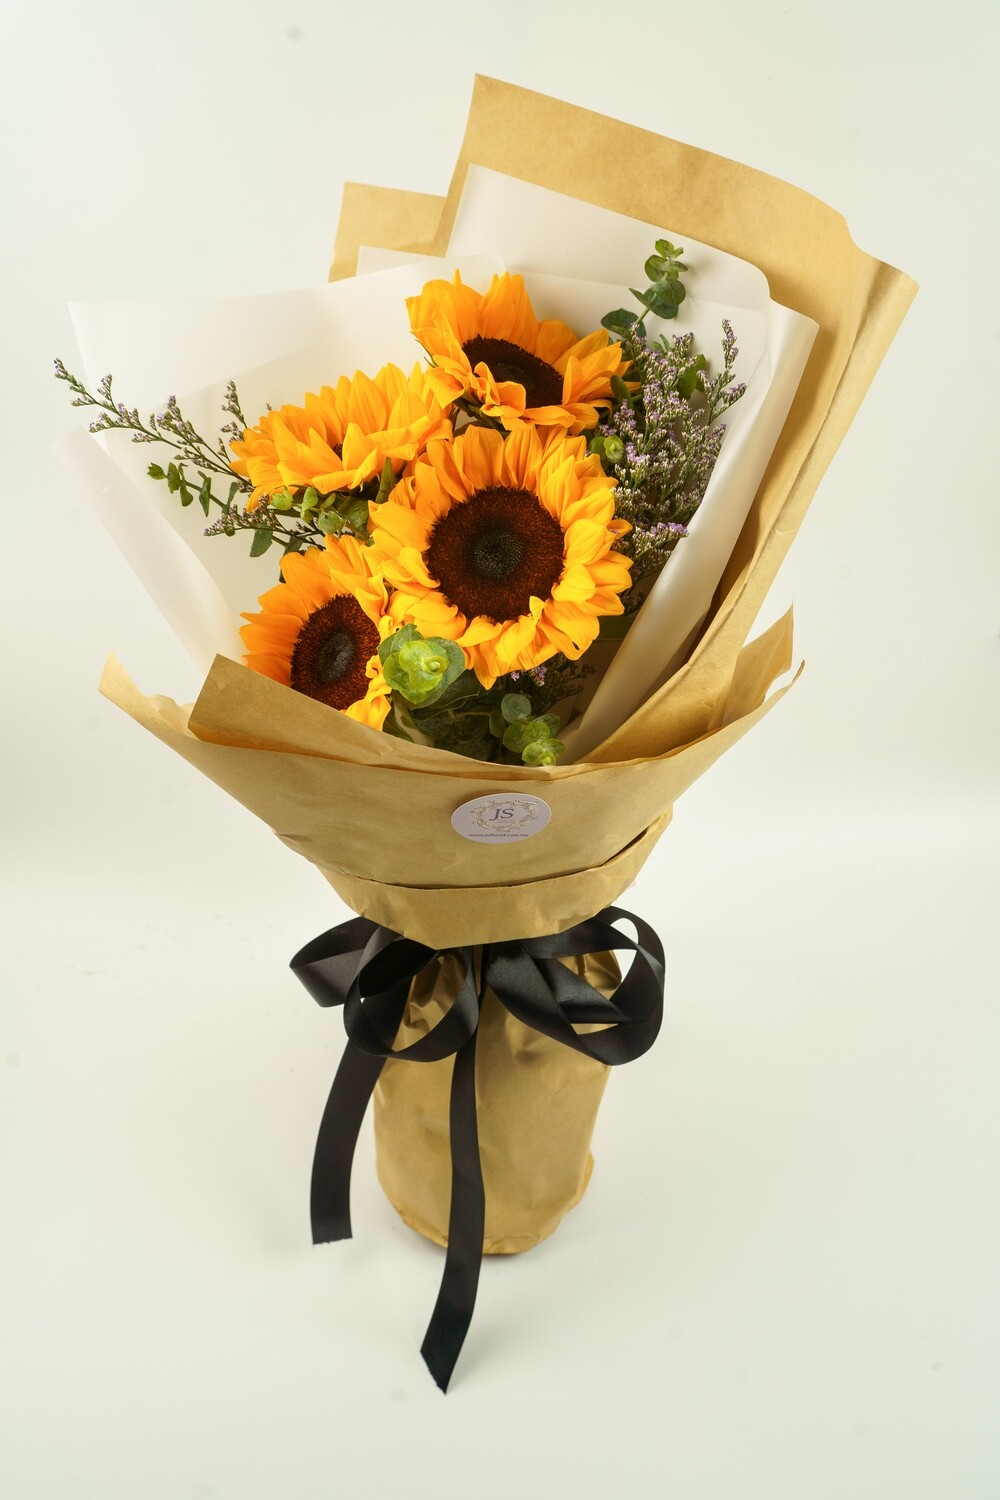 BQ1062 Dance with Me (By: JS Florist from Damansara)